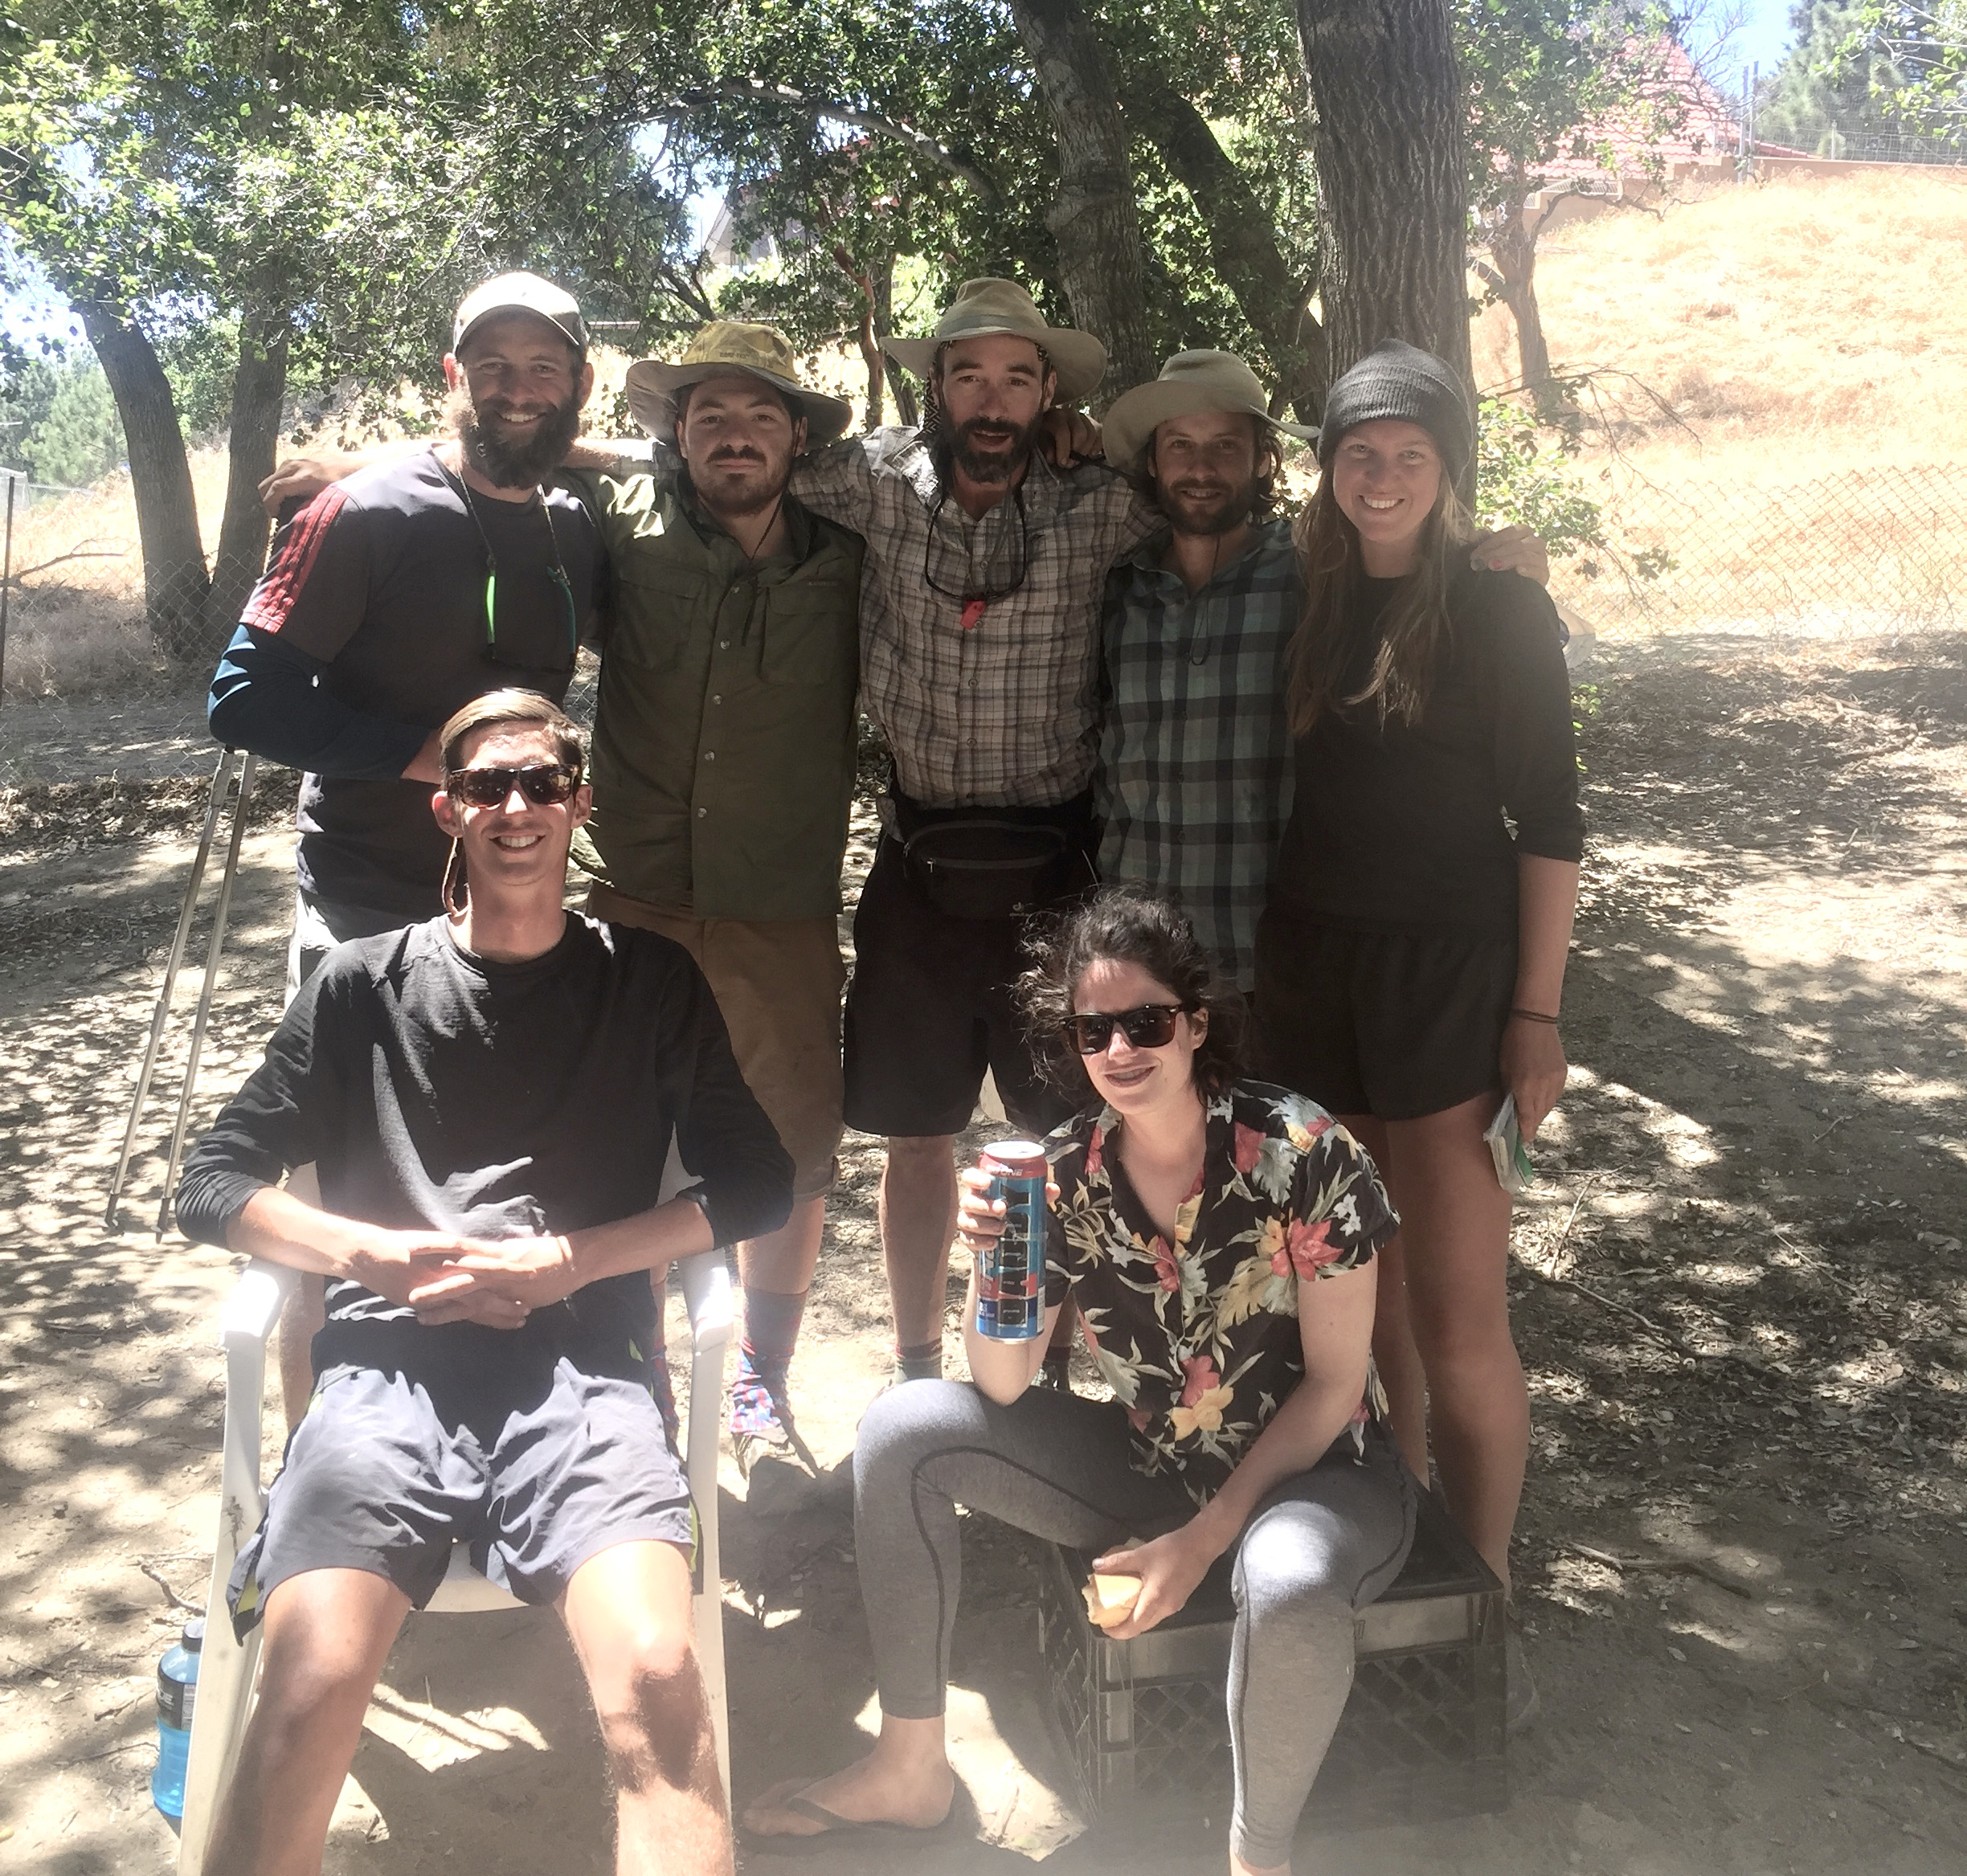 Desert family portrait, missing Brian who's heading back to SF and One 11 who stayed an extra night at Agua Dulce